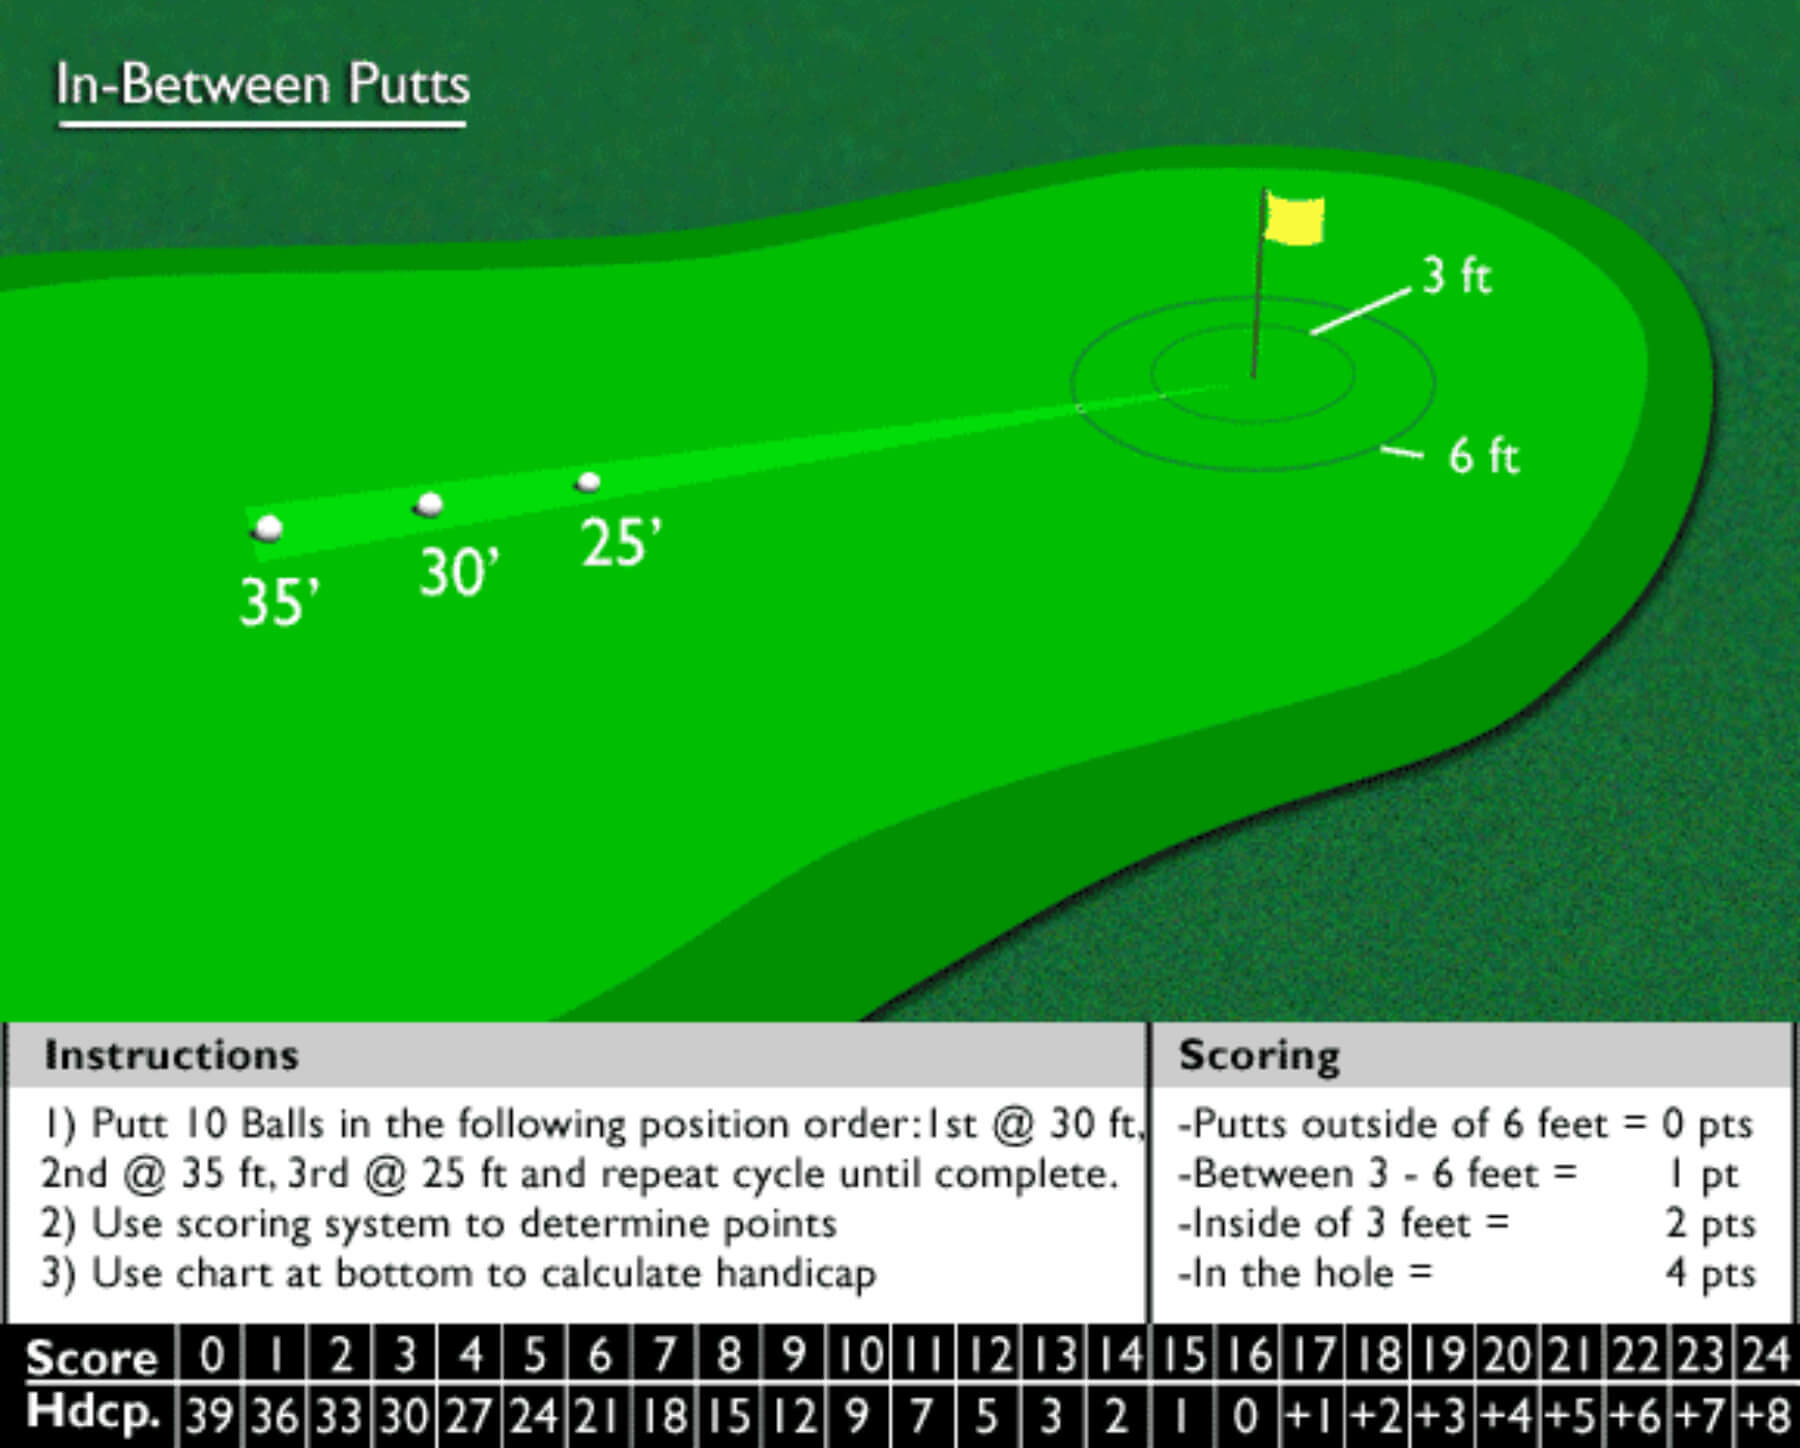 In-between putts